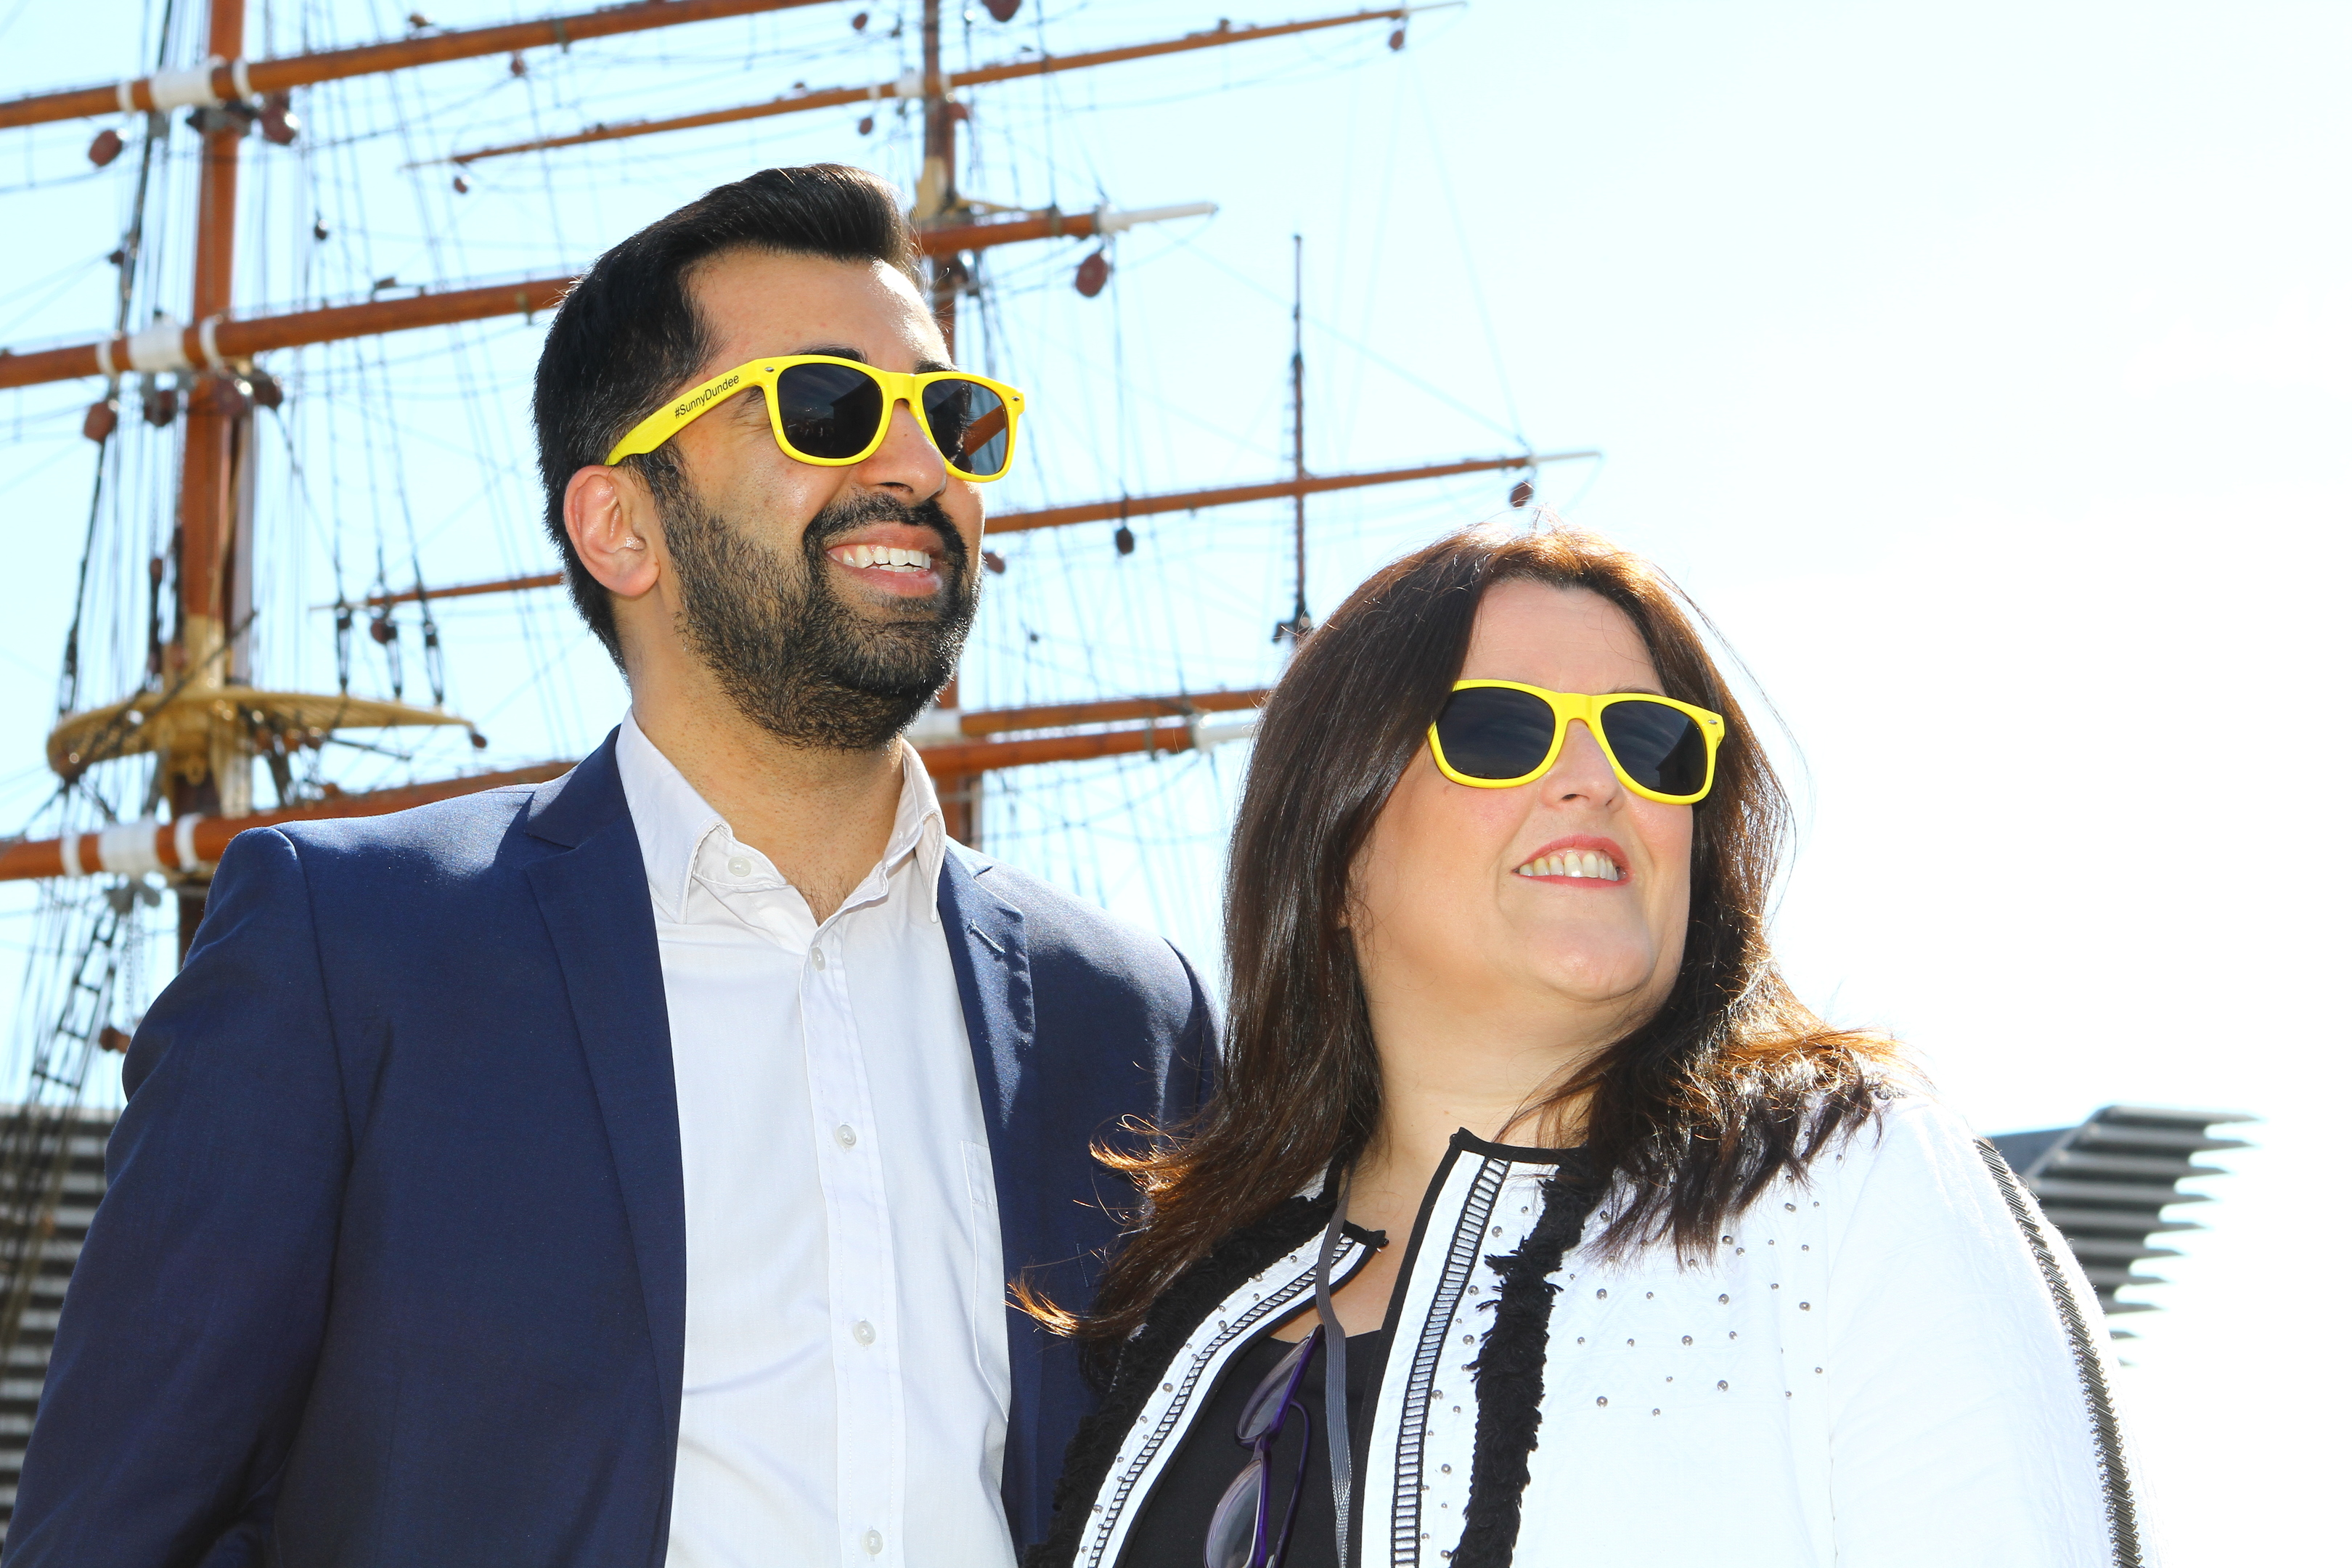 Transport Minister Humza Yousaf with Cllr Lynne Short, sporting their Sunny Dundee sunglasses at Discovery Point,at the launch of the NaviGoGo app